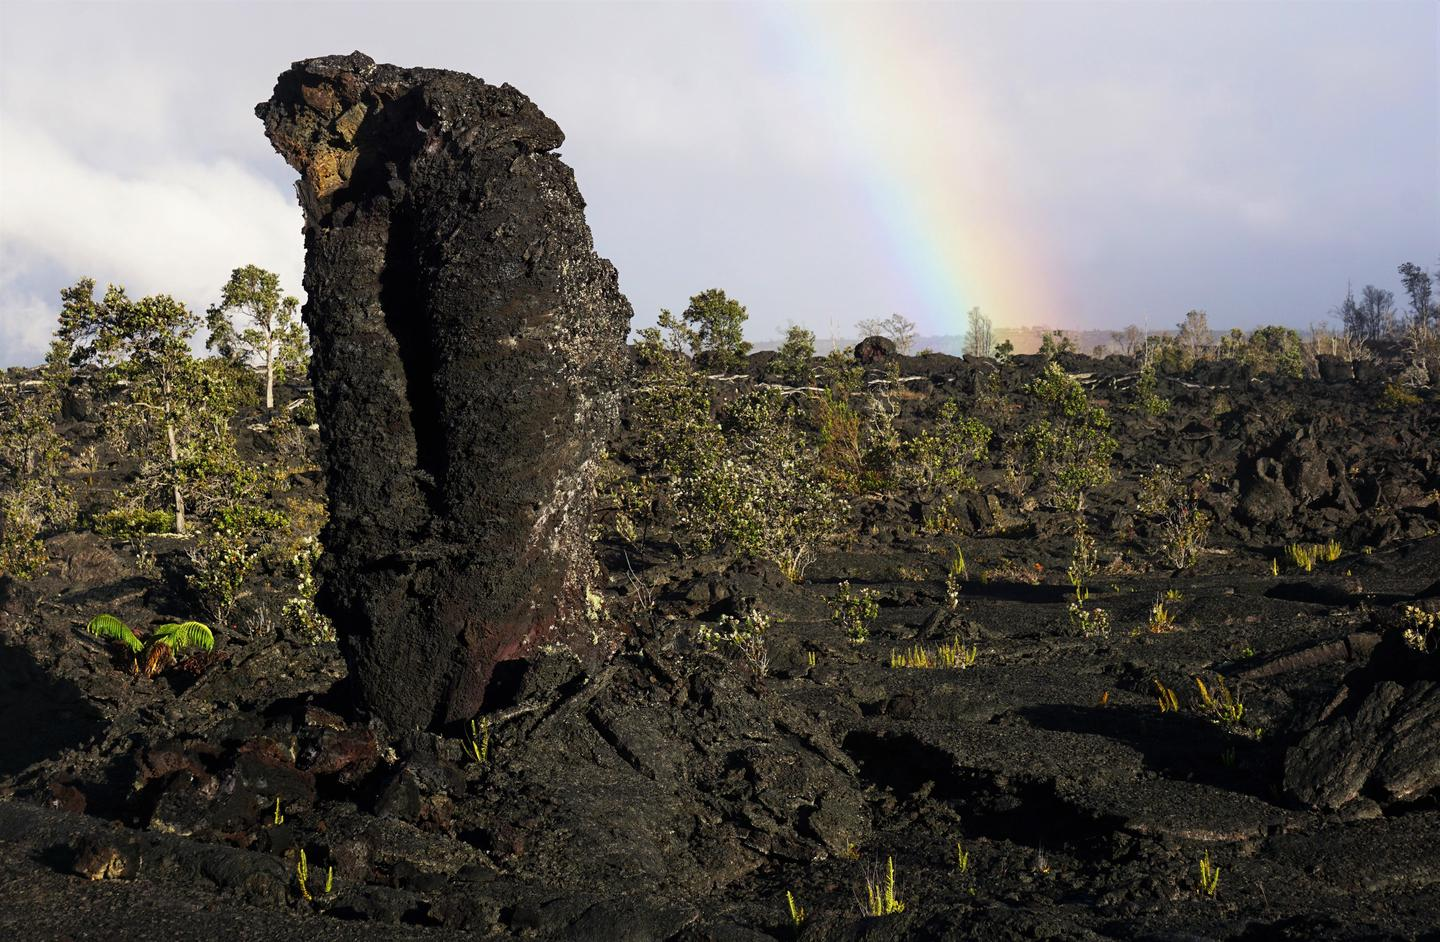 Lava TreesLava trees memorialize trees that once stood in the path of encroaching lava